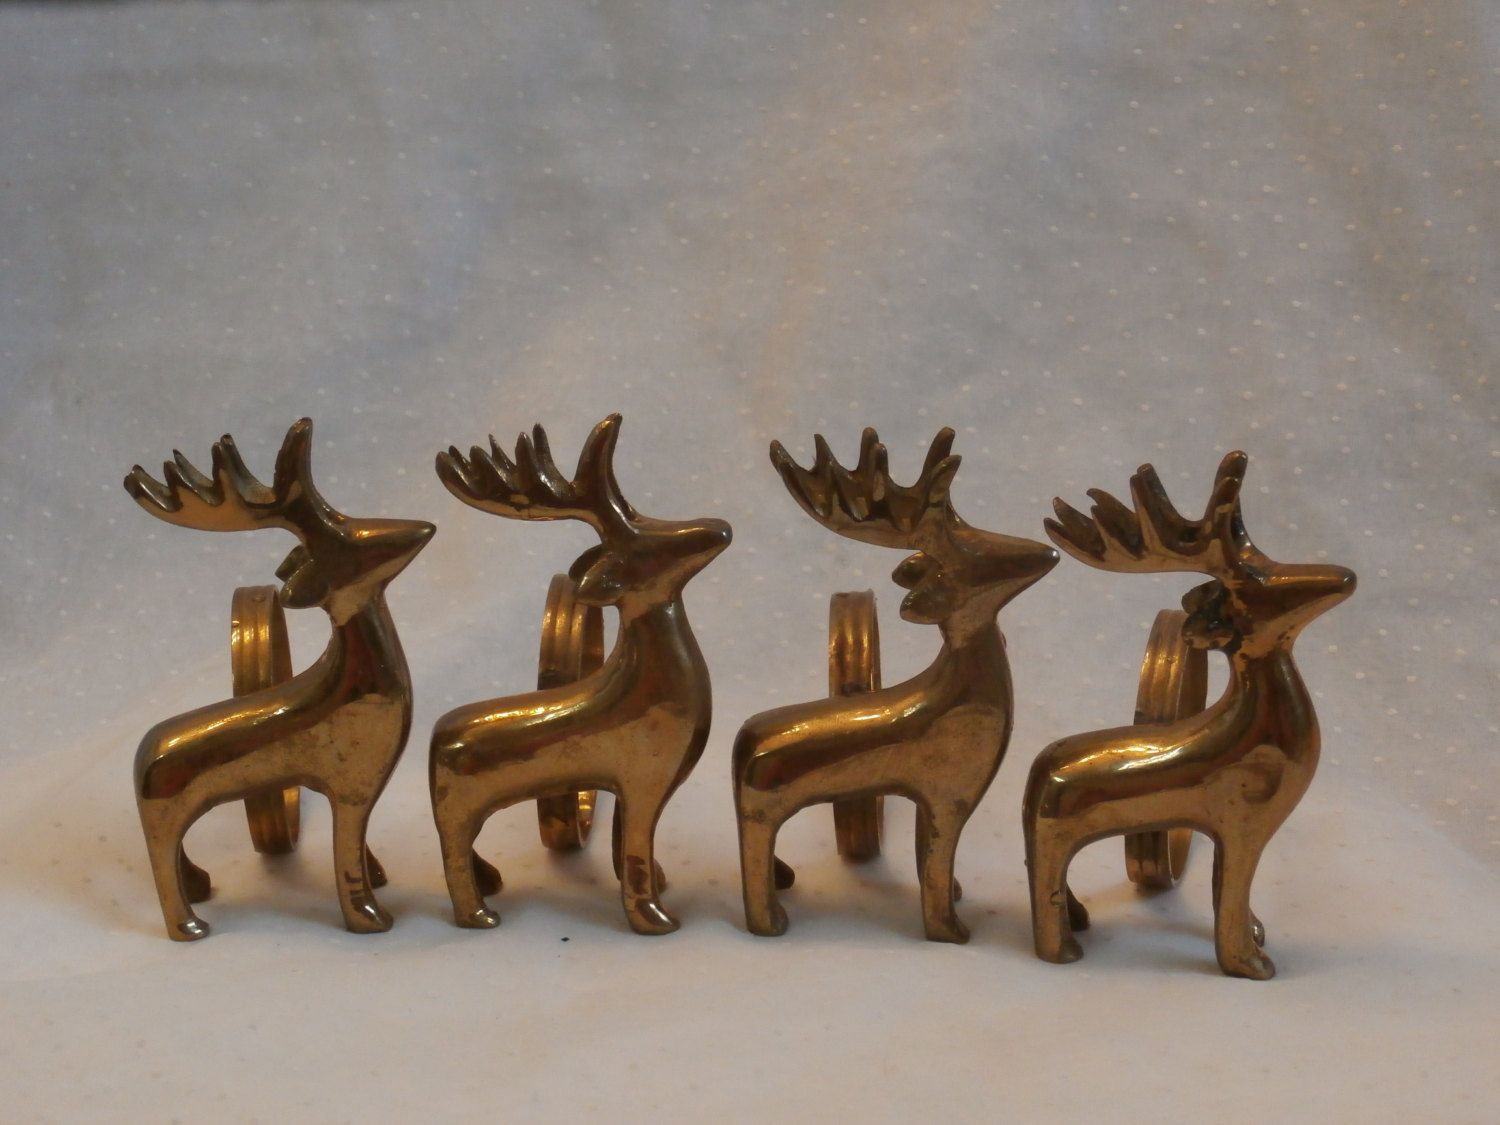 Exceptional 4 Vintage Brass Reindeer Napkin Rings, Great For Christmastime Or Anytime Photo Gallery